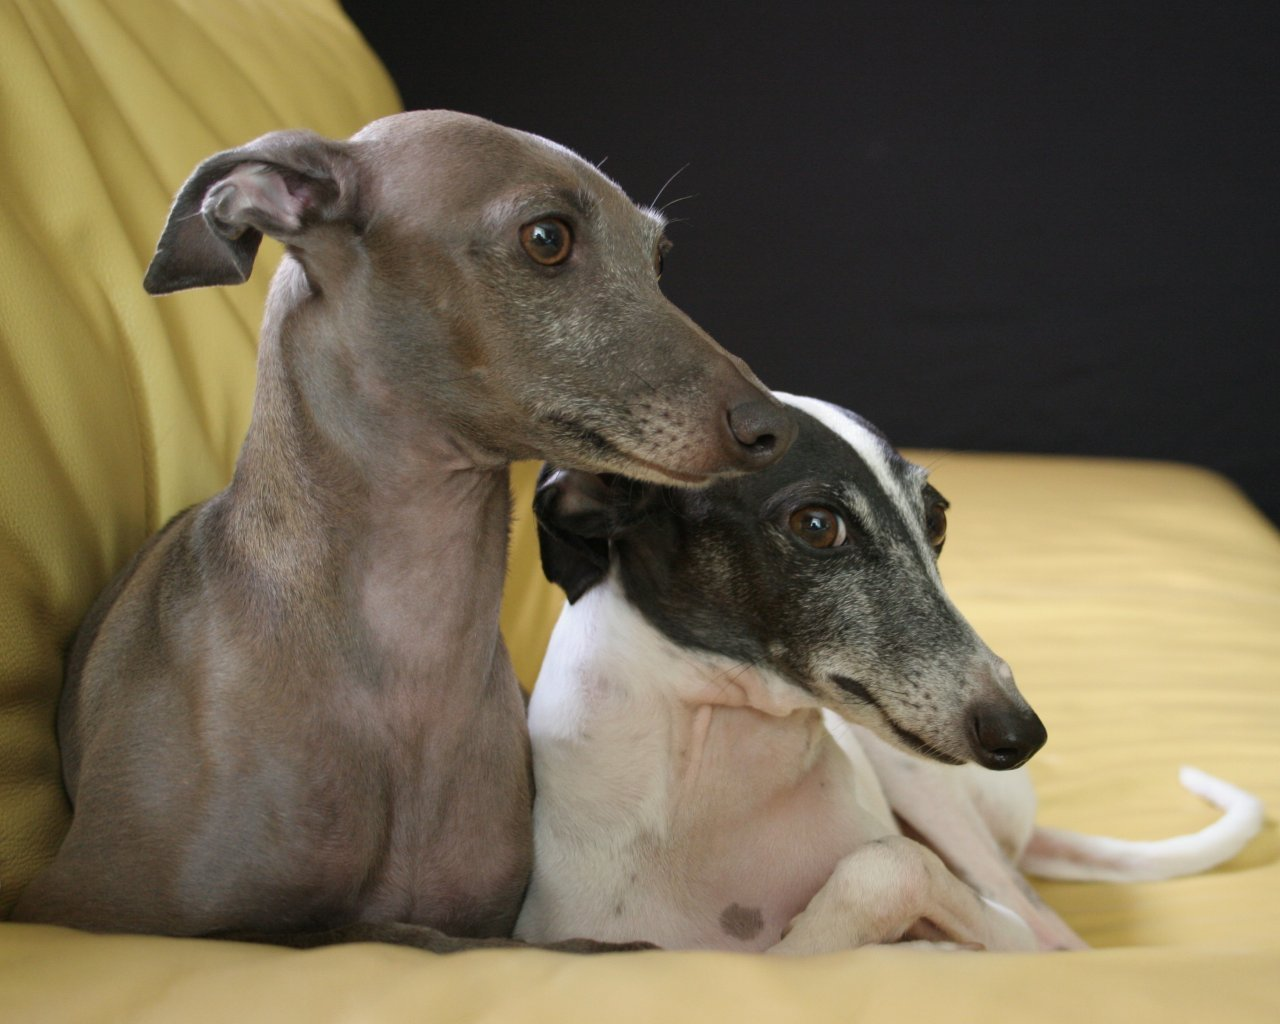 Italian Greyhound Dog Breed history and some interesting facts